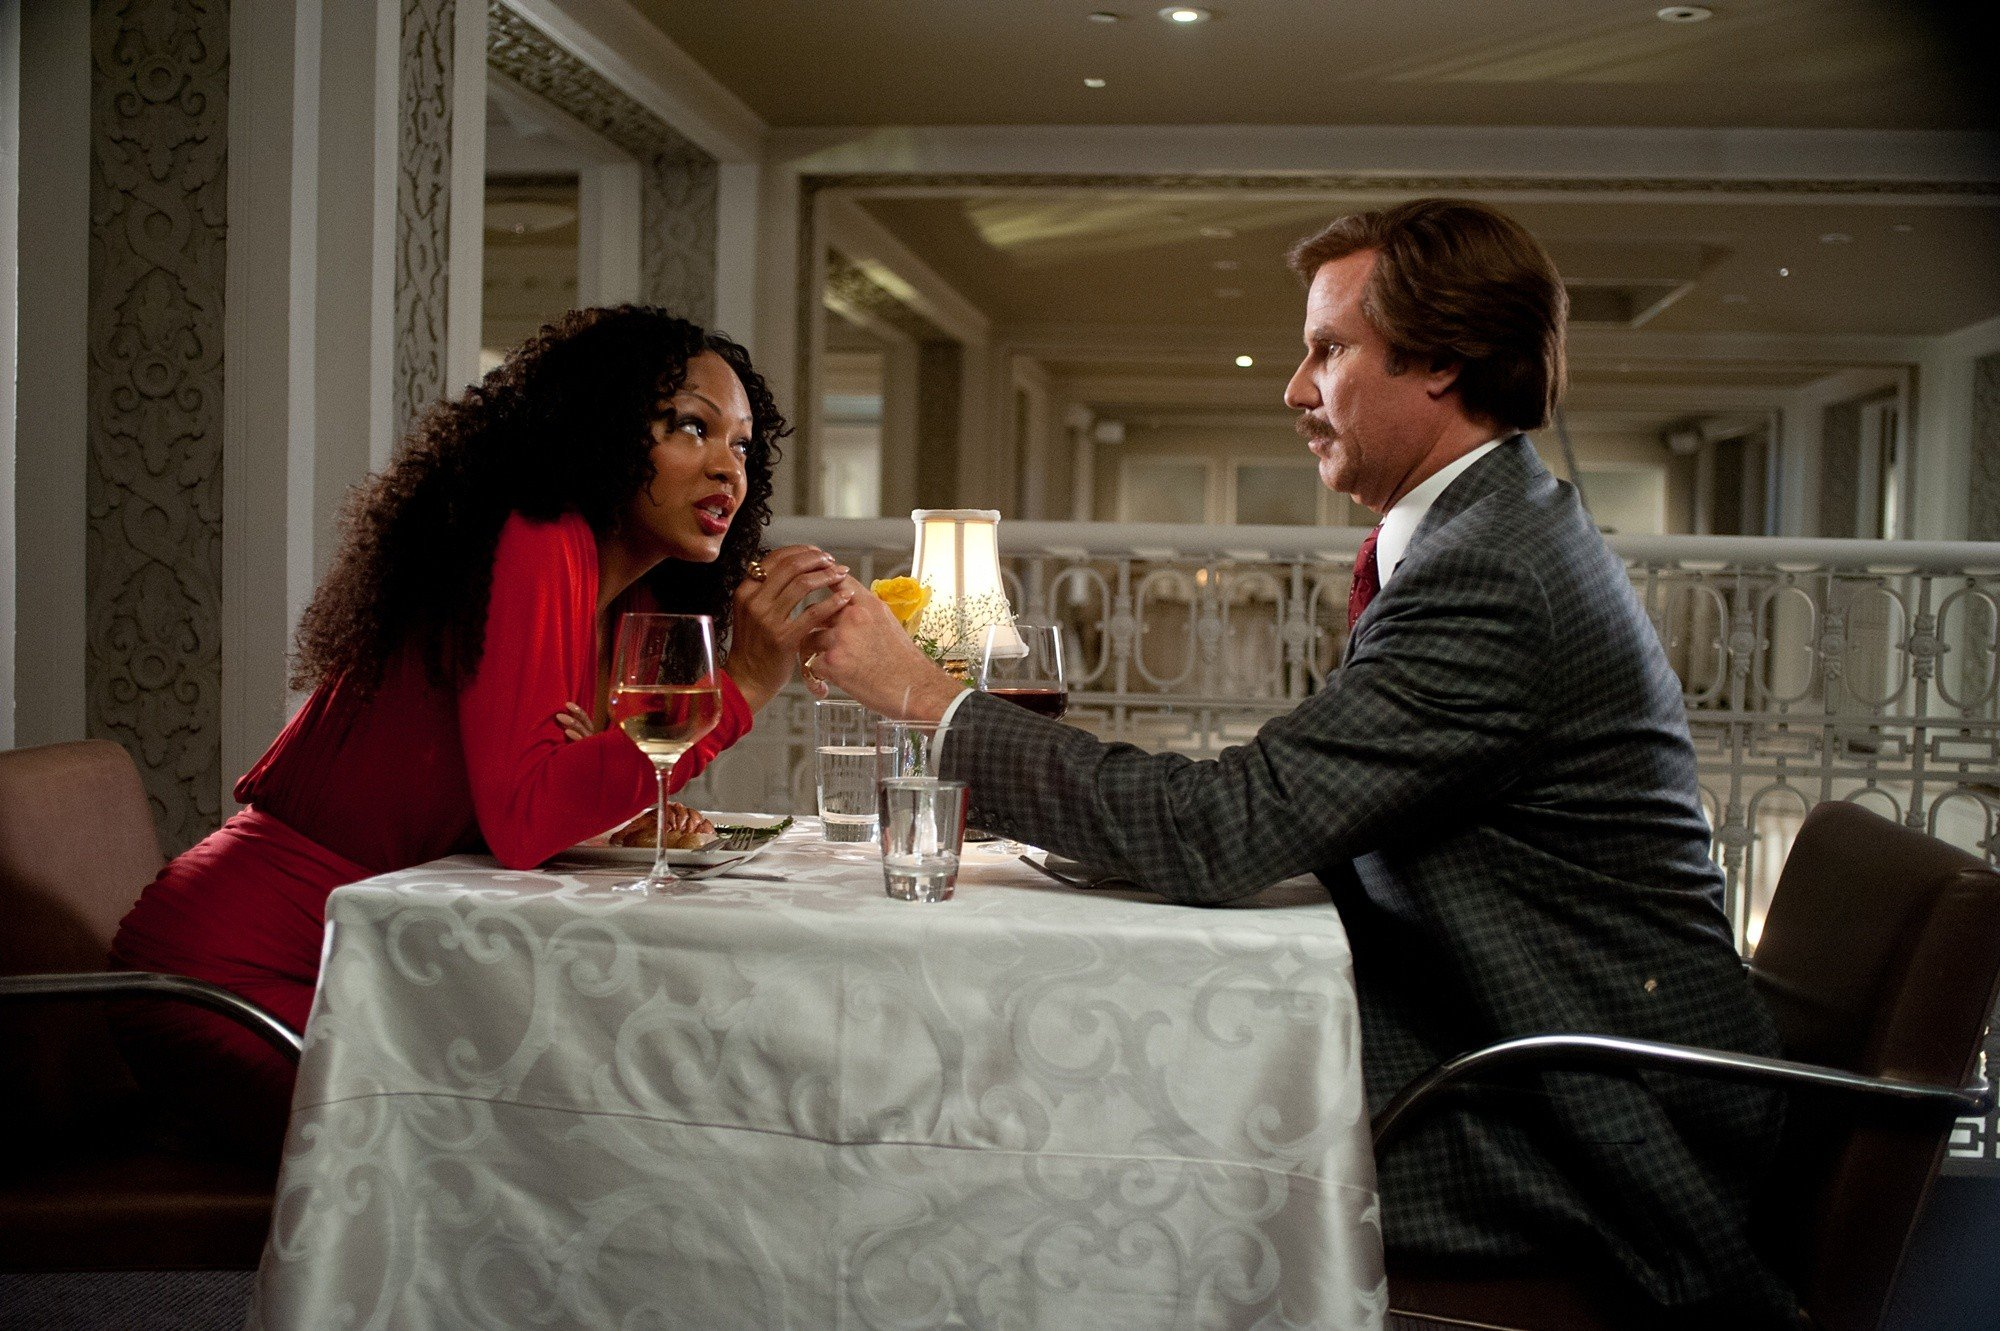 Meagan Good stars as Linda Jackson and Will Ferrell stars as Ron Burgundy in Paramount Pictures' Anchorman: The Legend Continues (2013)